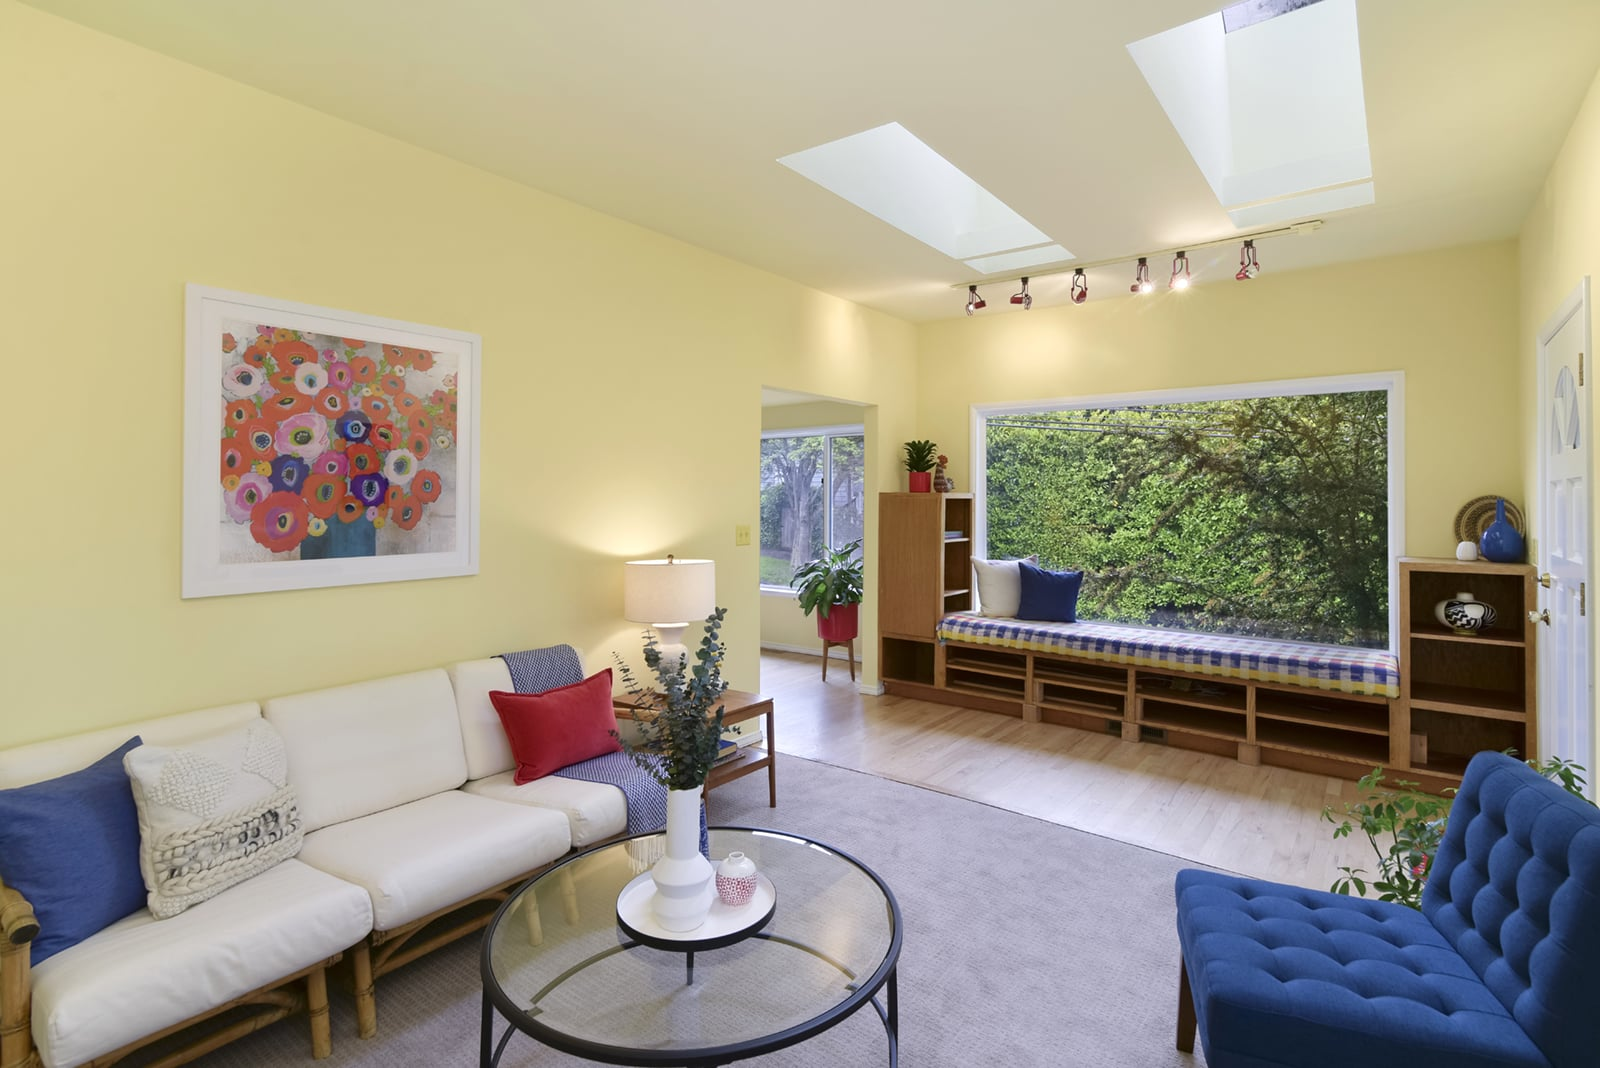 4158 46th Ave SW - 005